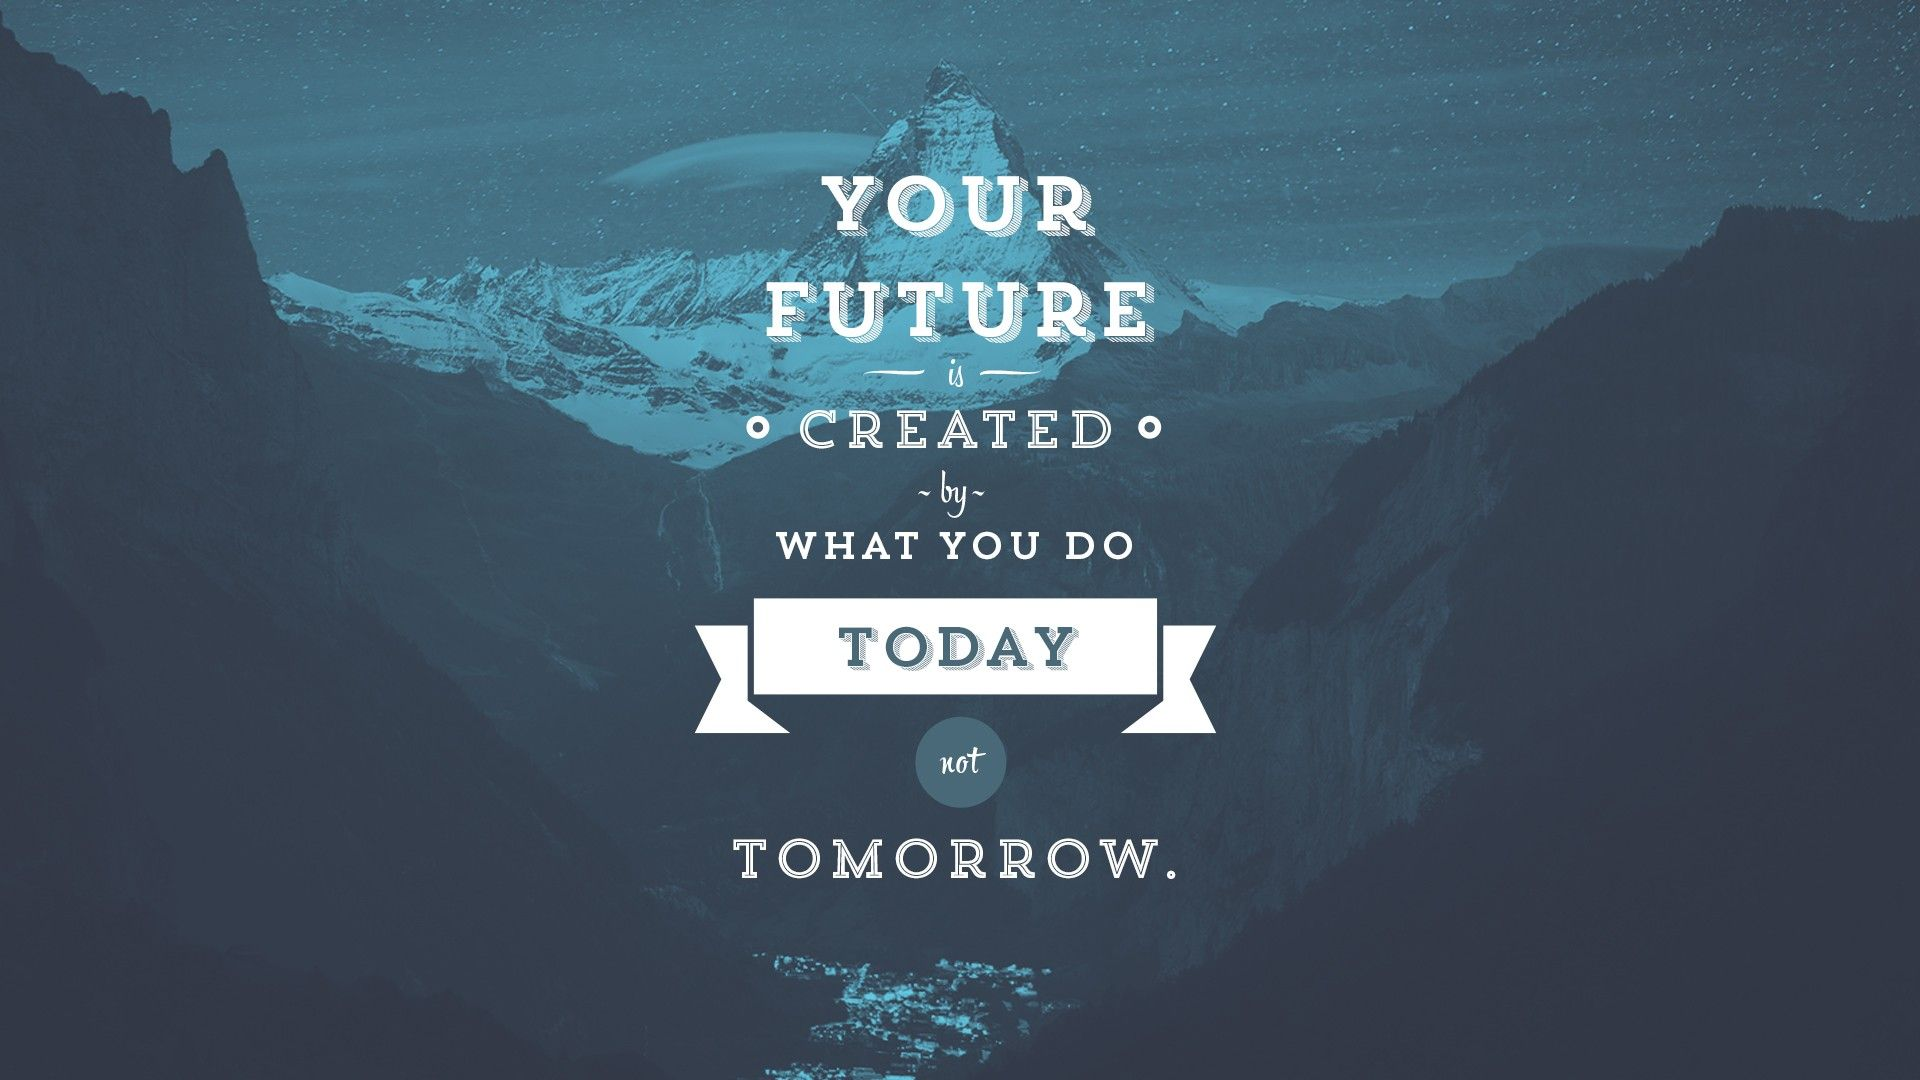 your future is created by what you do today not tomorrow 35 inspirational typography hd wallpapers for desktop iphone and android